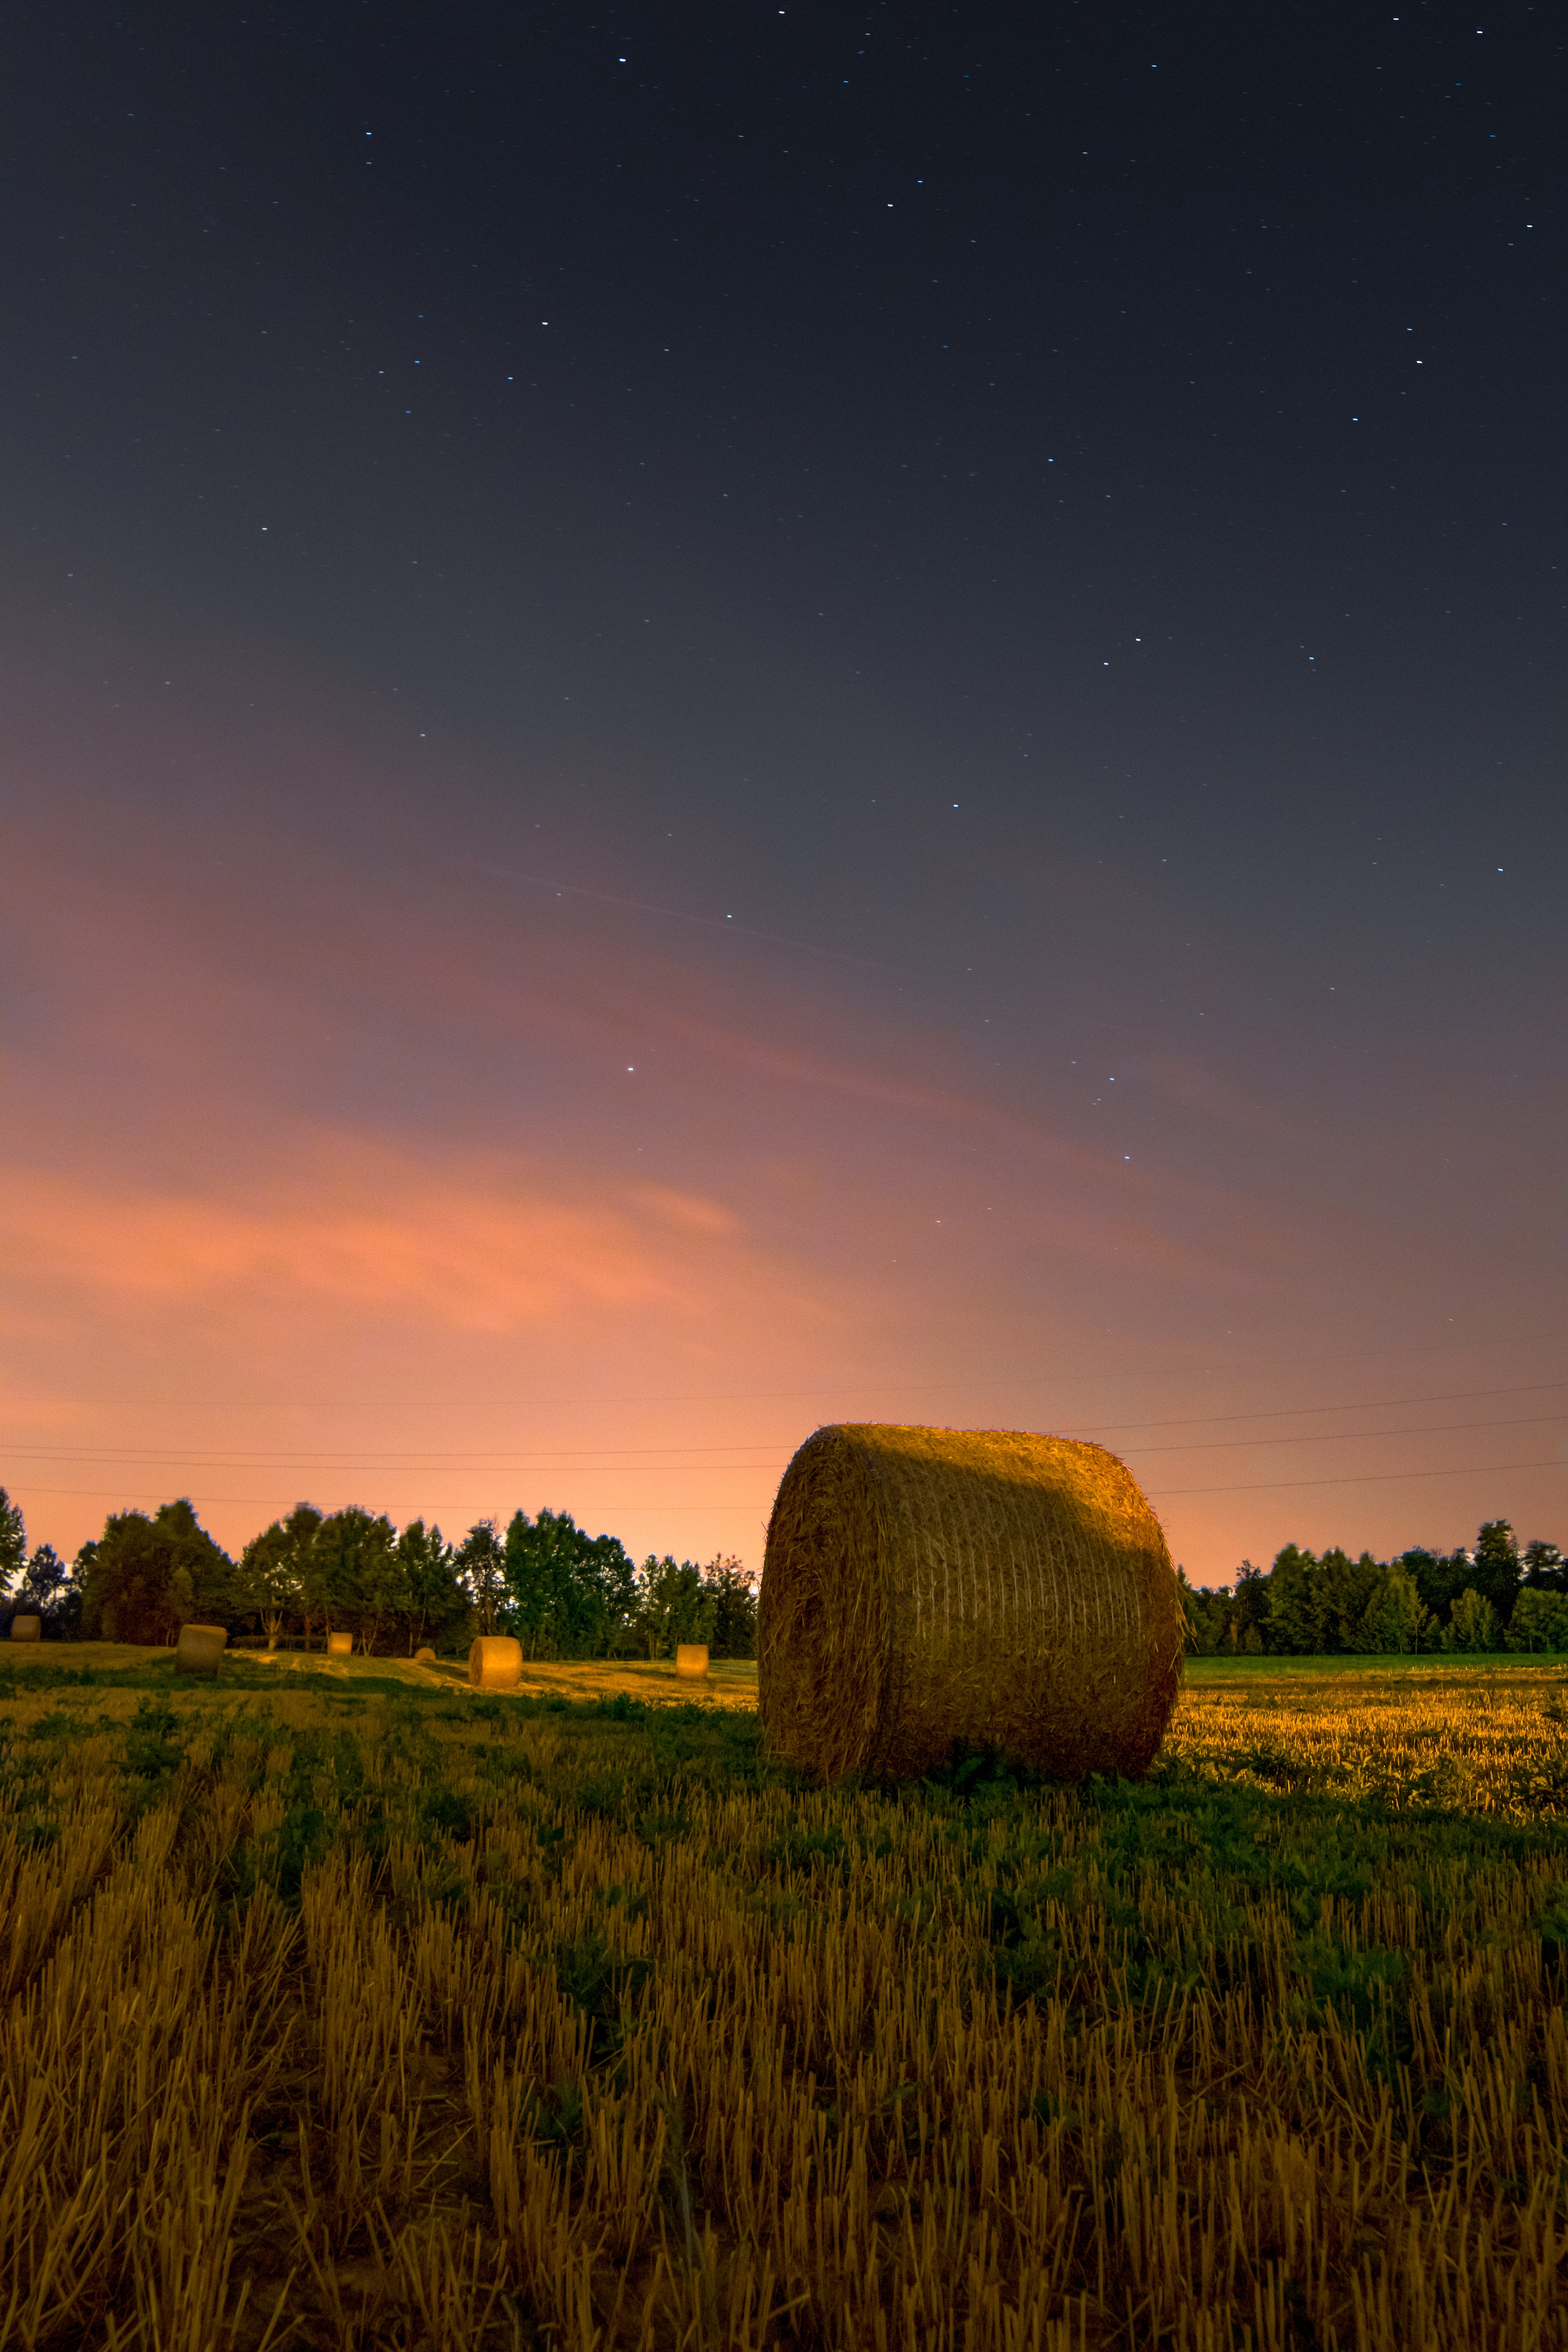 brown hay and clear sky at night